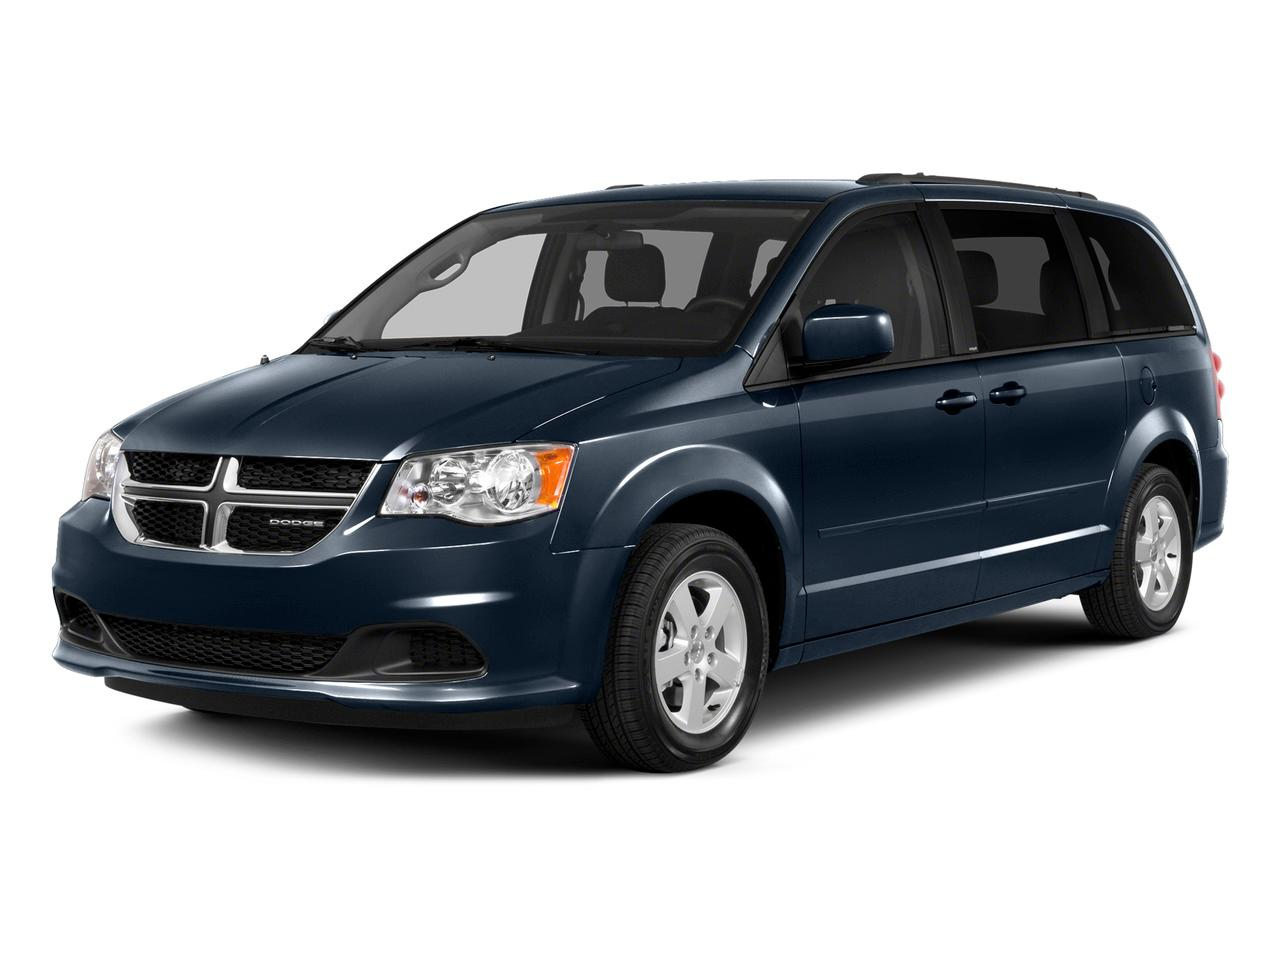 2015 Dodge Grand Caravan Vehicle Photo in Independence, MO 64055